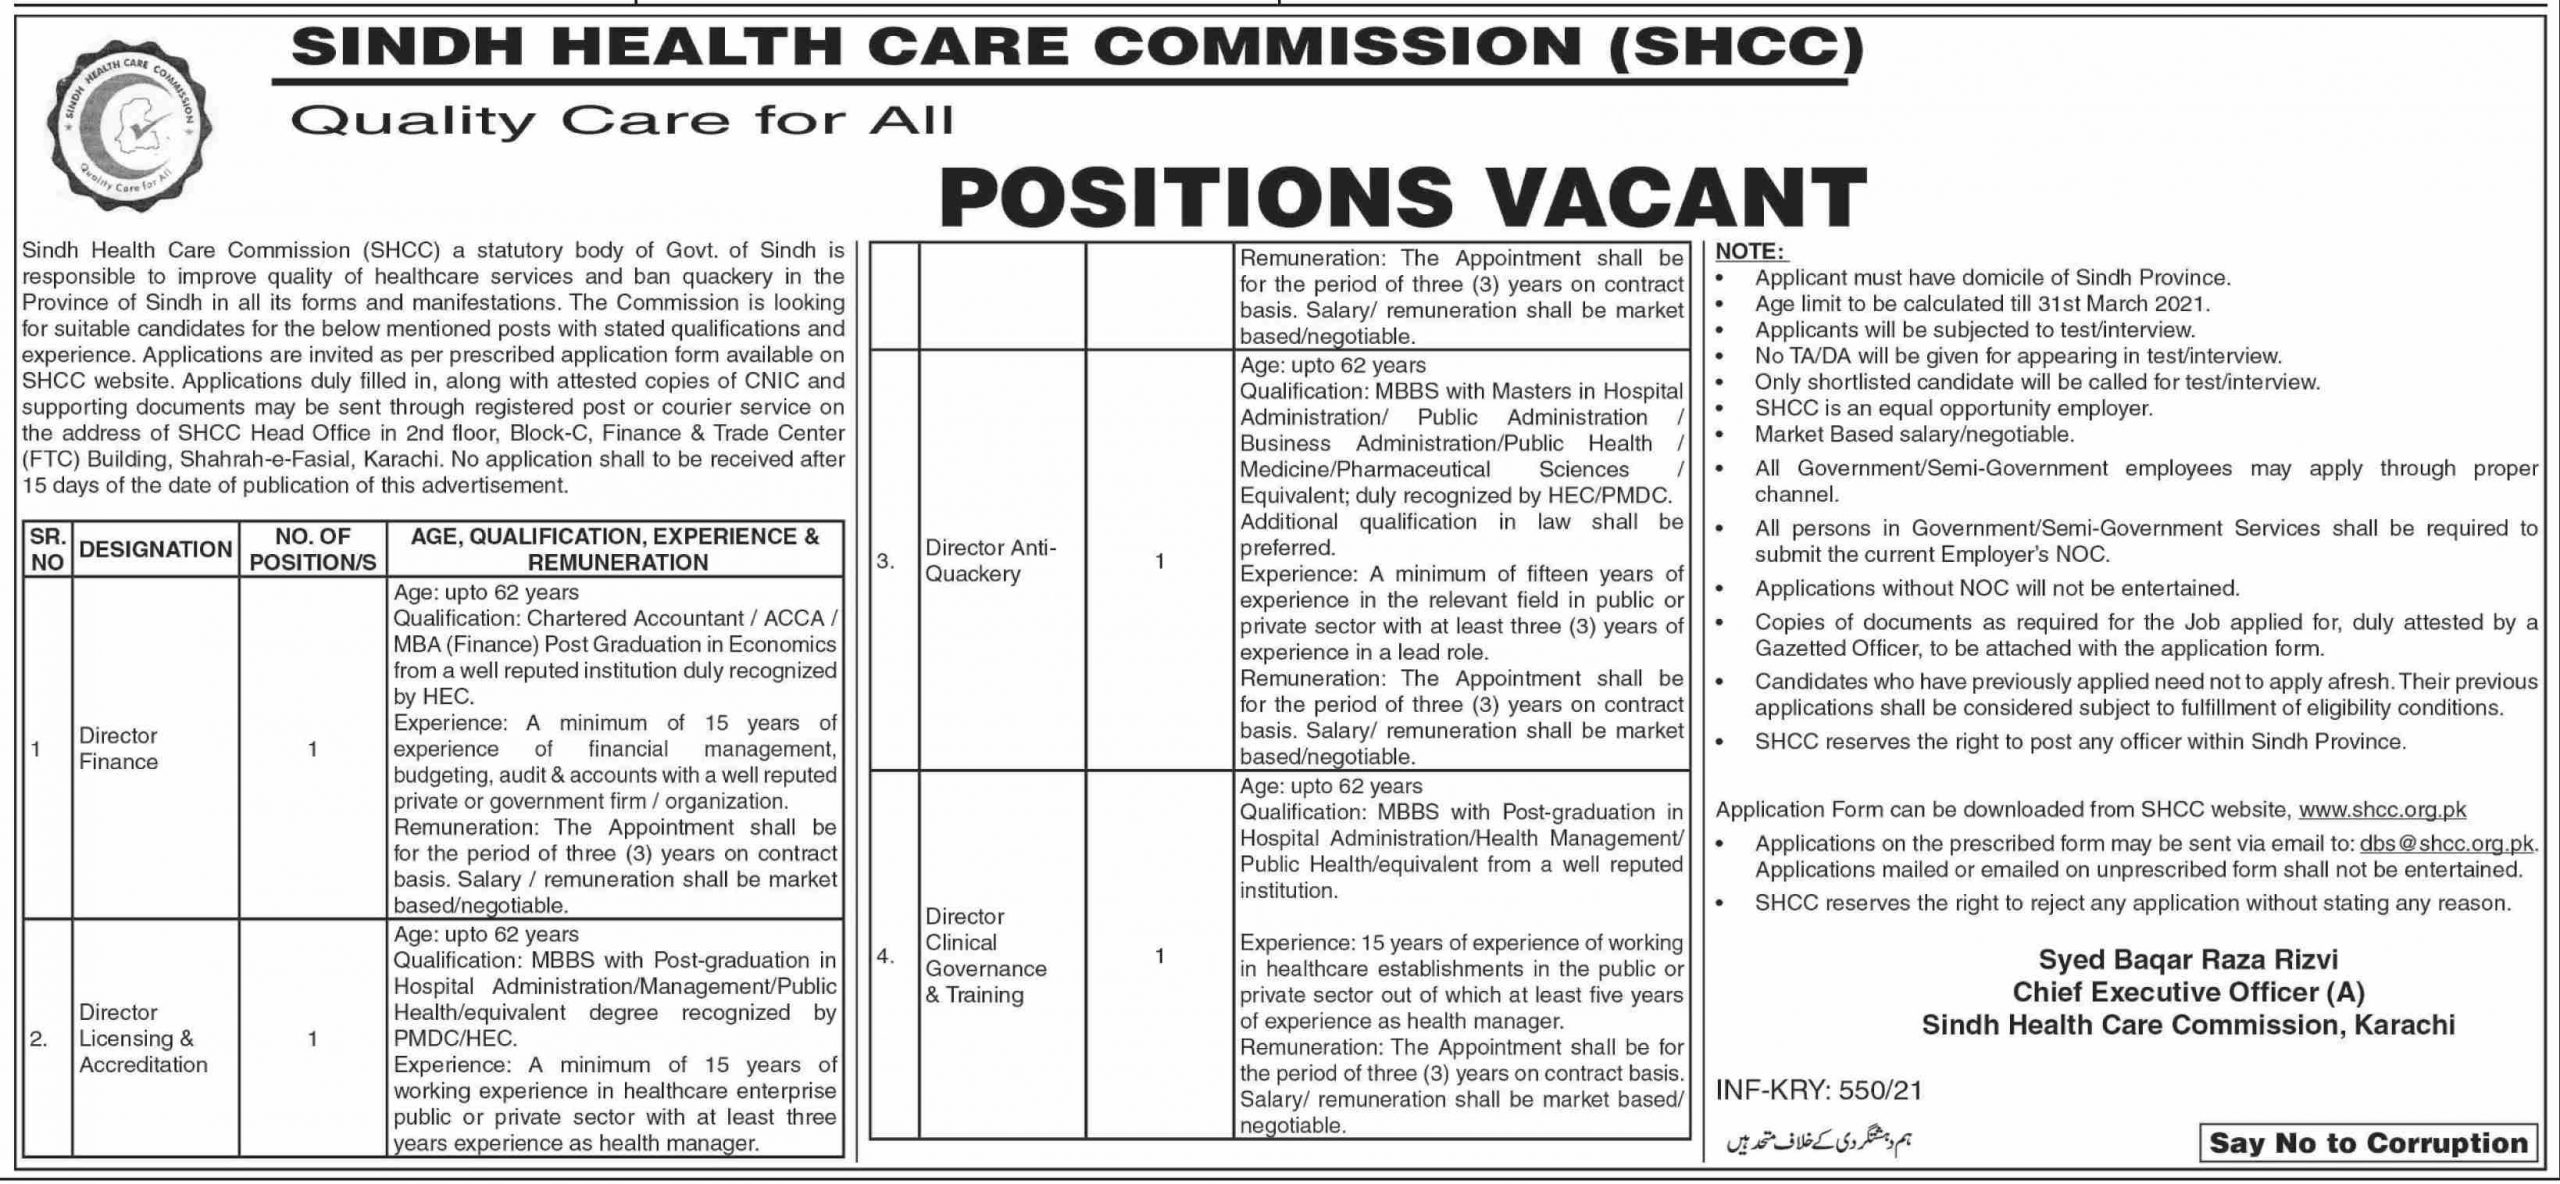 Sindh Health Care Commission (SHCC) Jobs February 2021